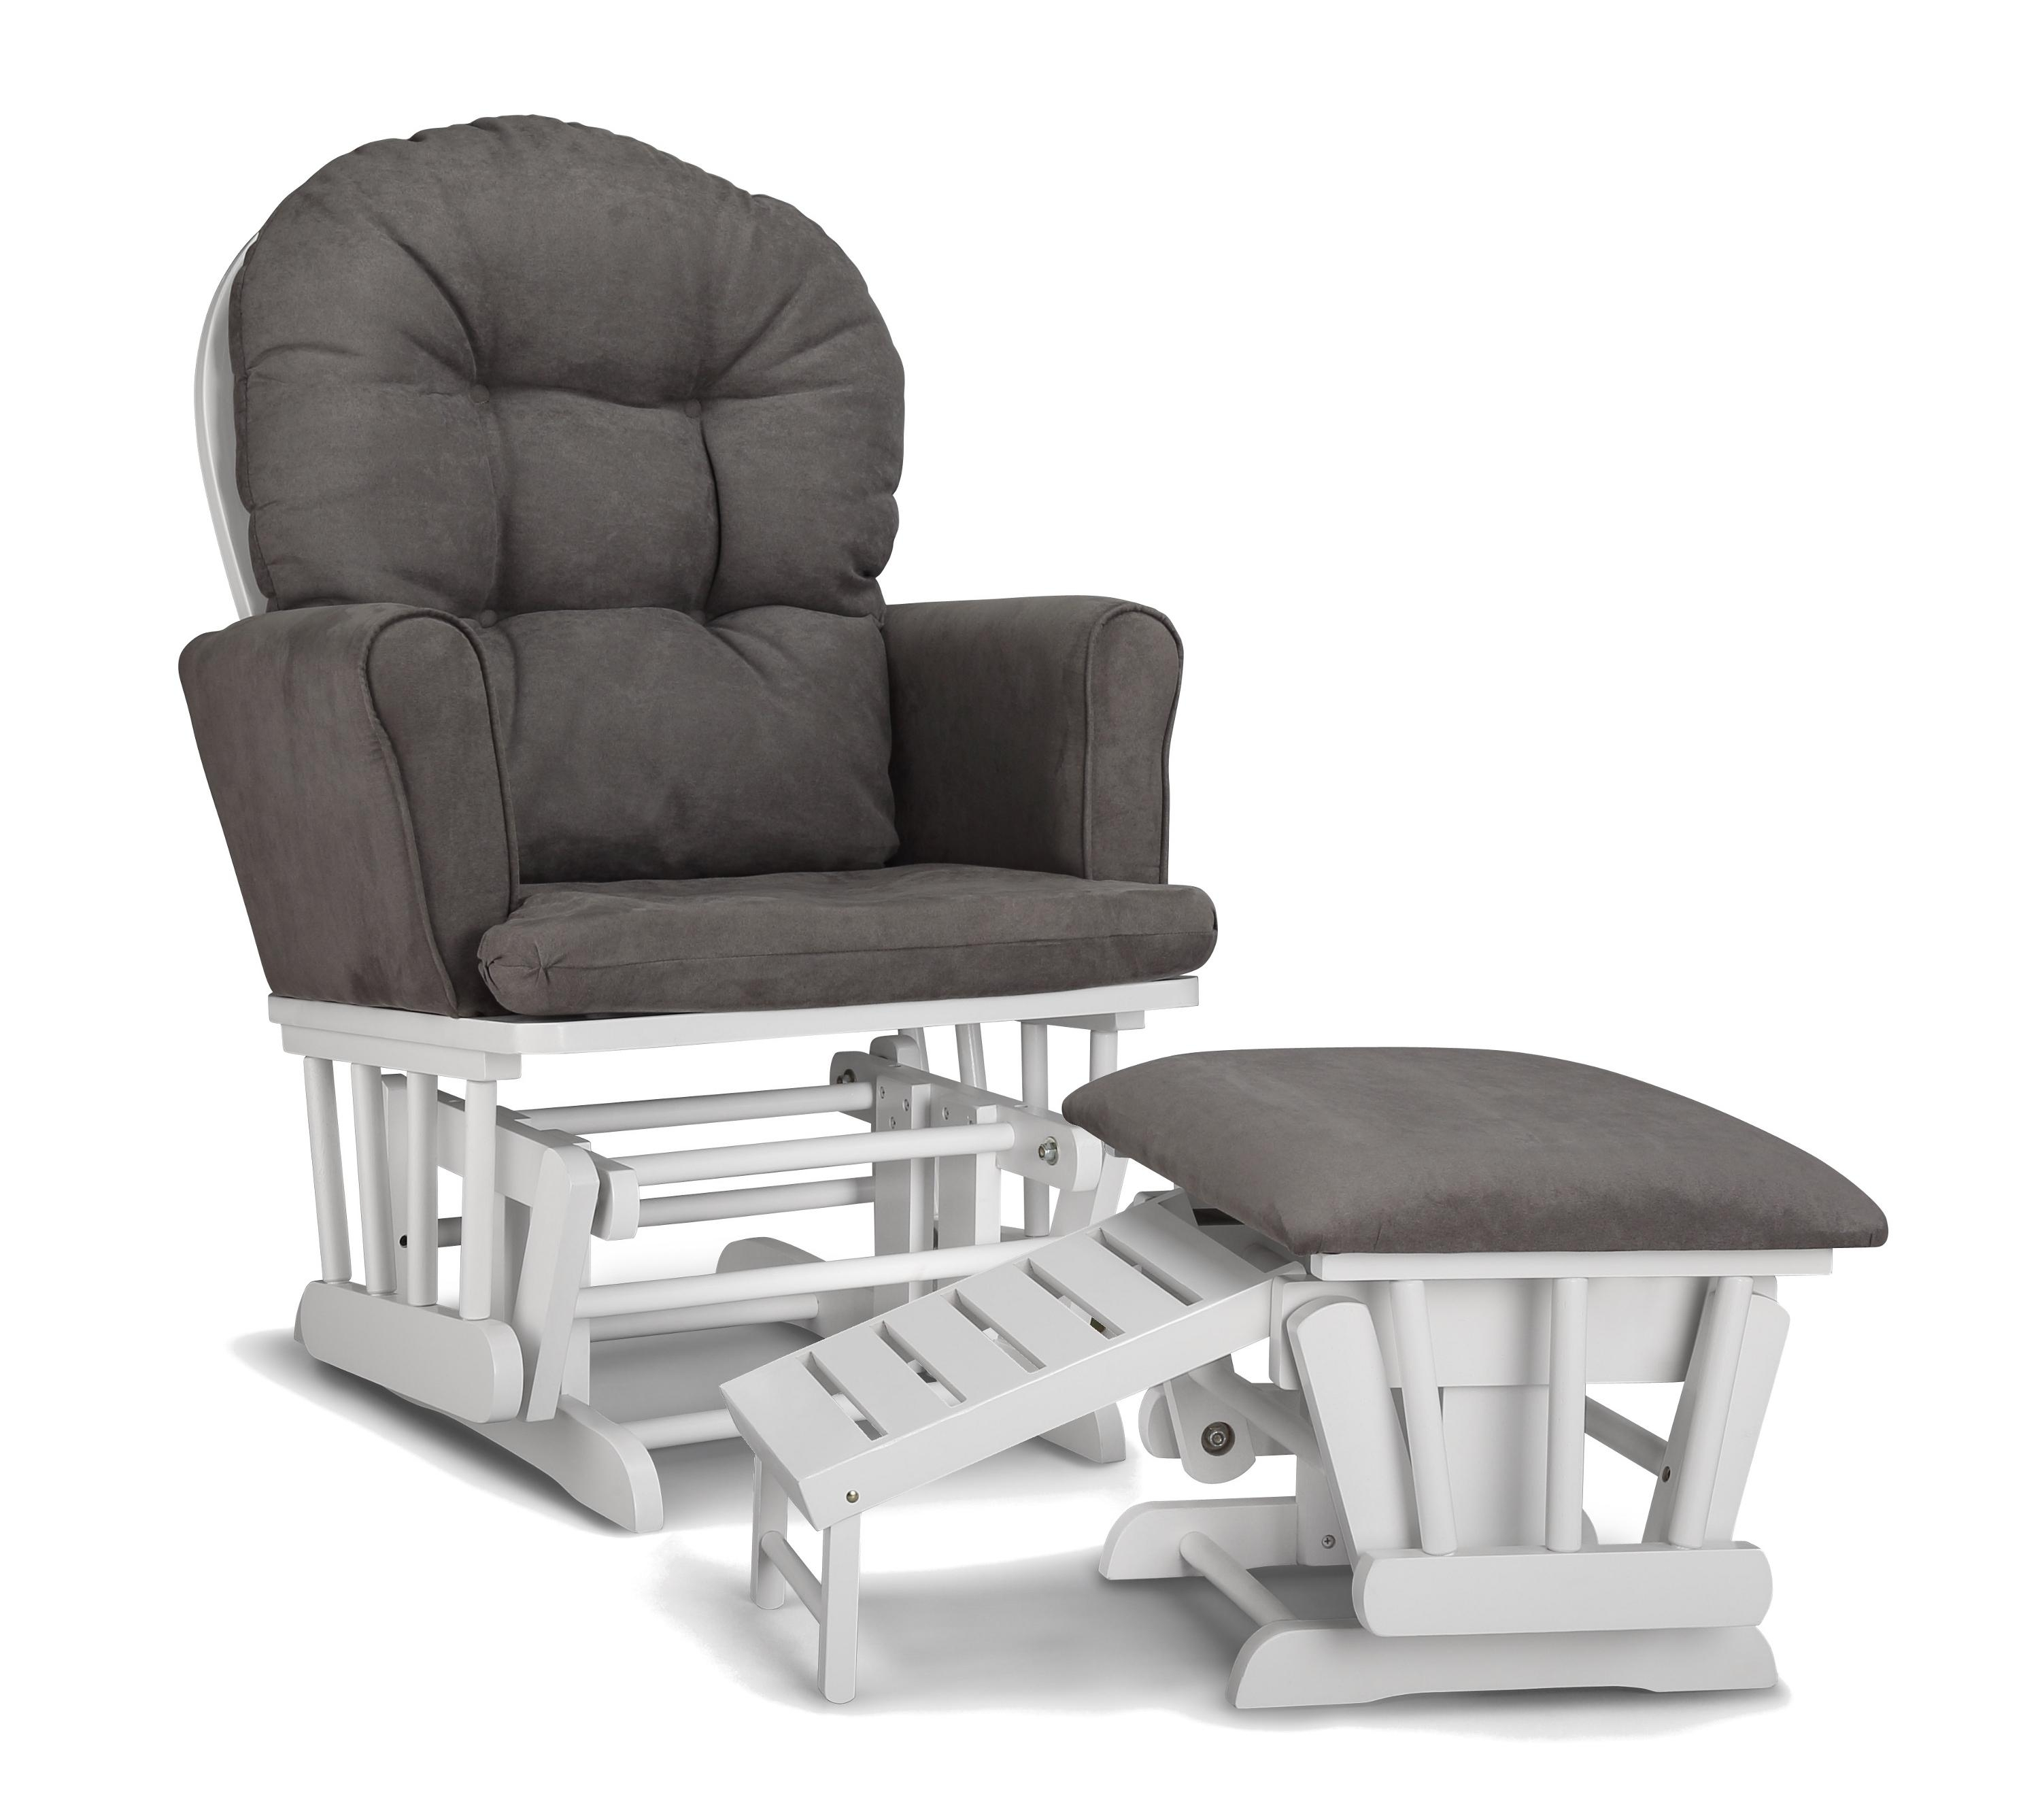 Chair | Rocker Glider Recliner With Ottoman Glider Ottoman Set Small Intended For Rocking Chairs With Ottoman (#4 of 15)